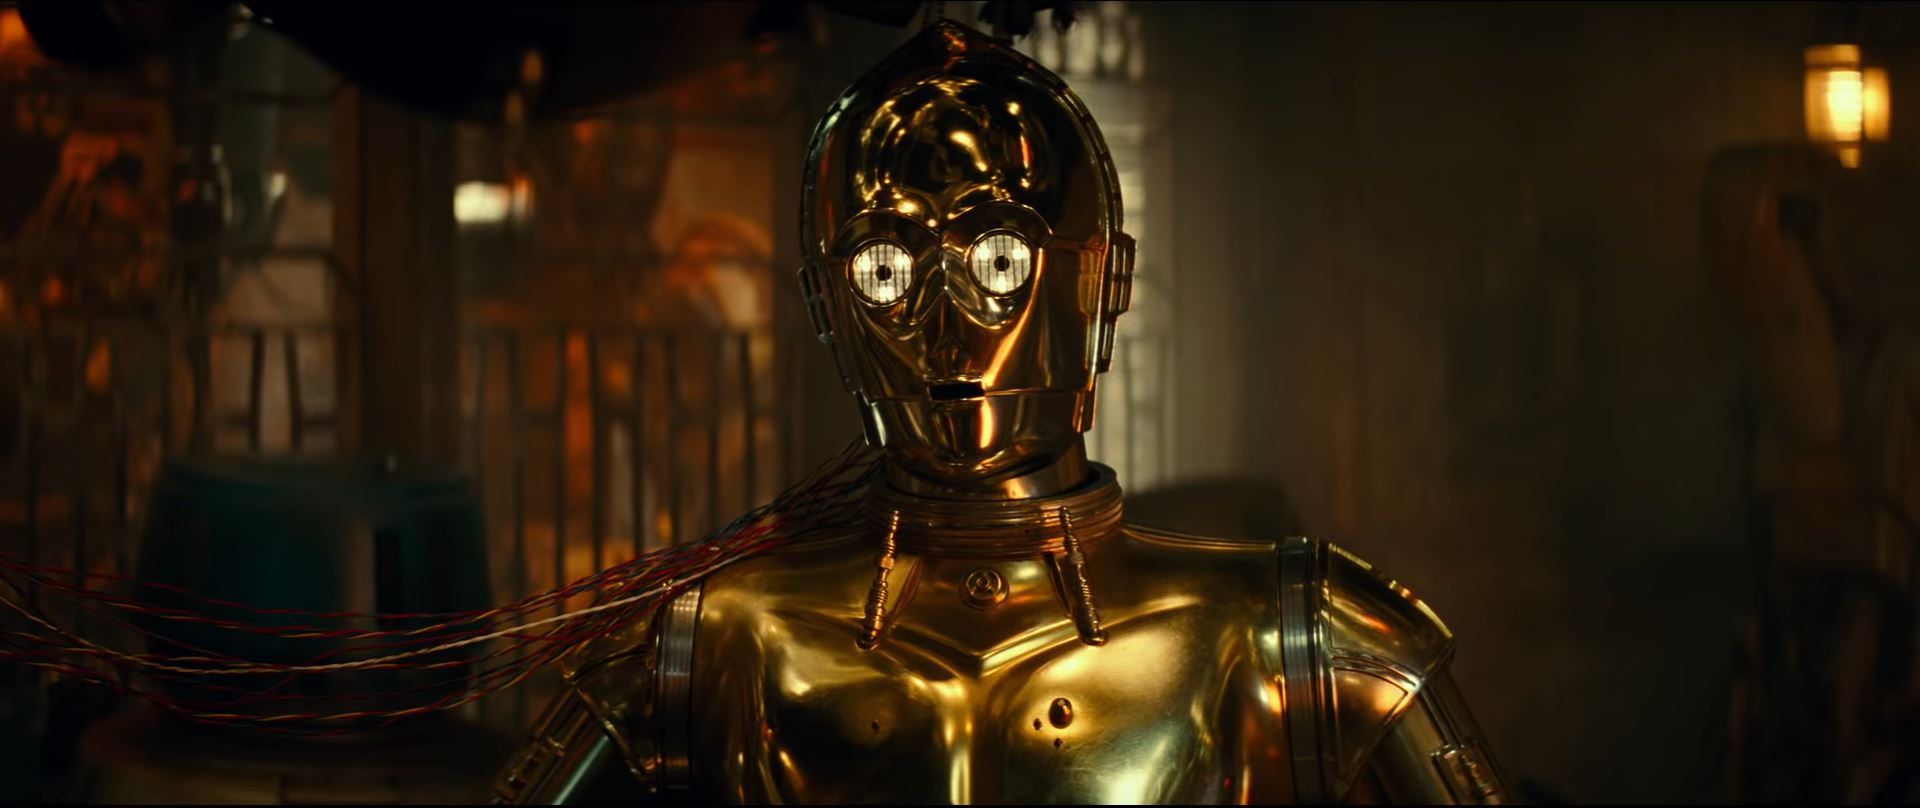 Anthony Daniels as C3PO in The Rise of Skywalker